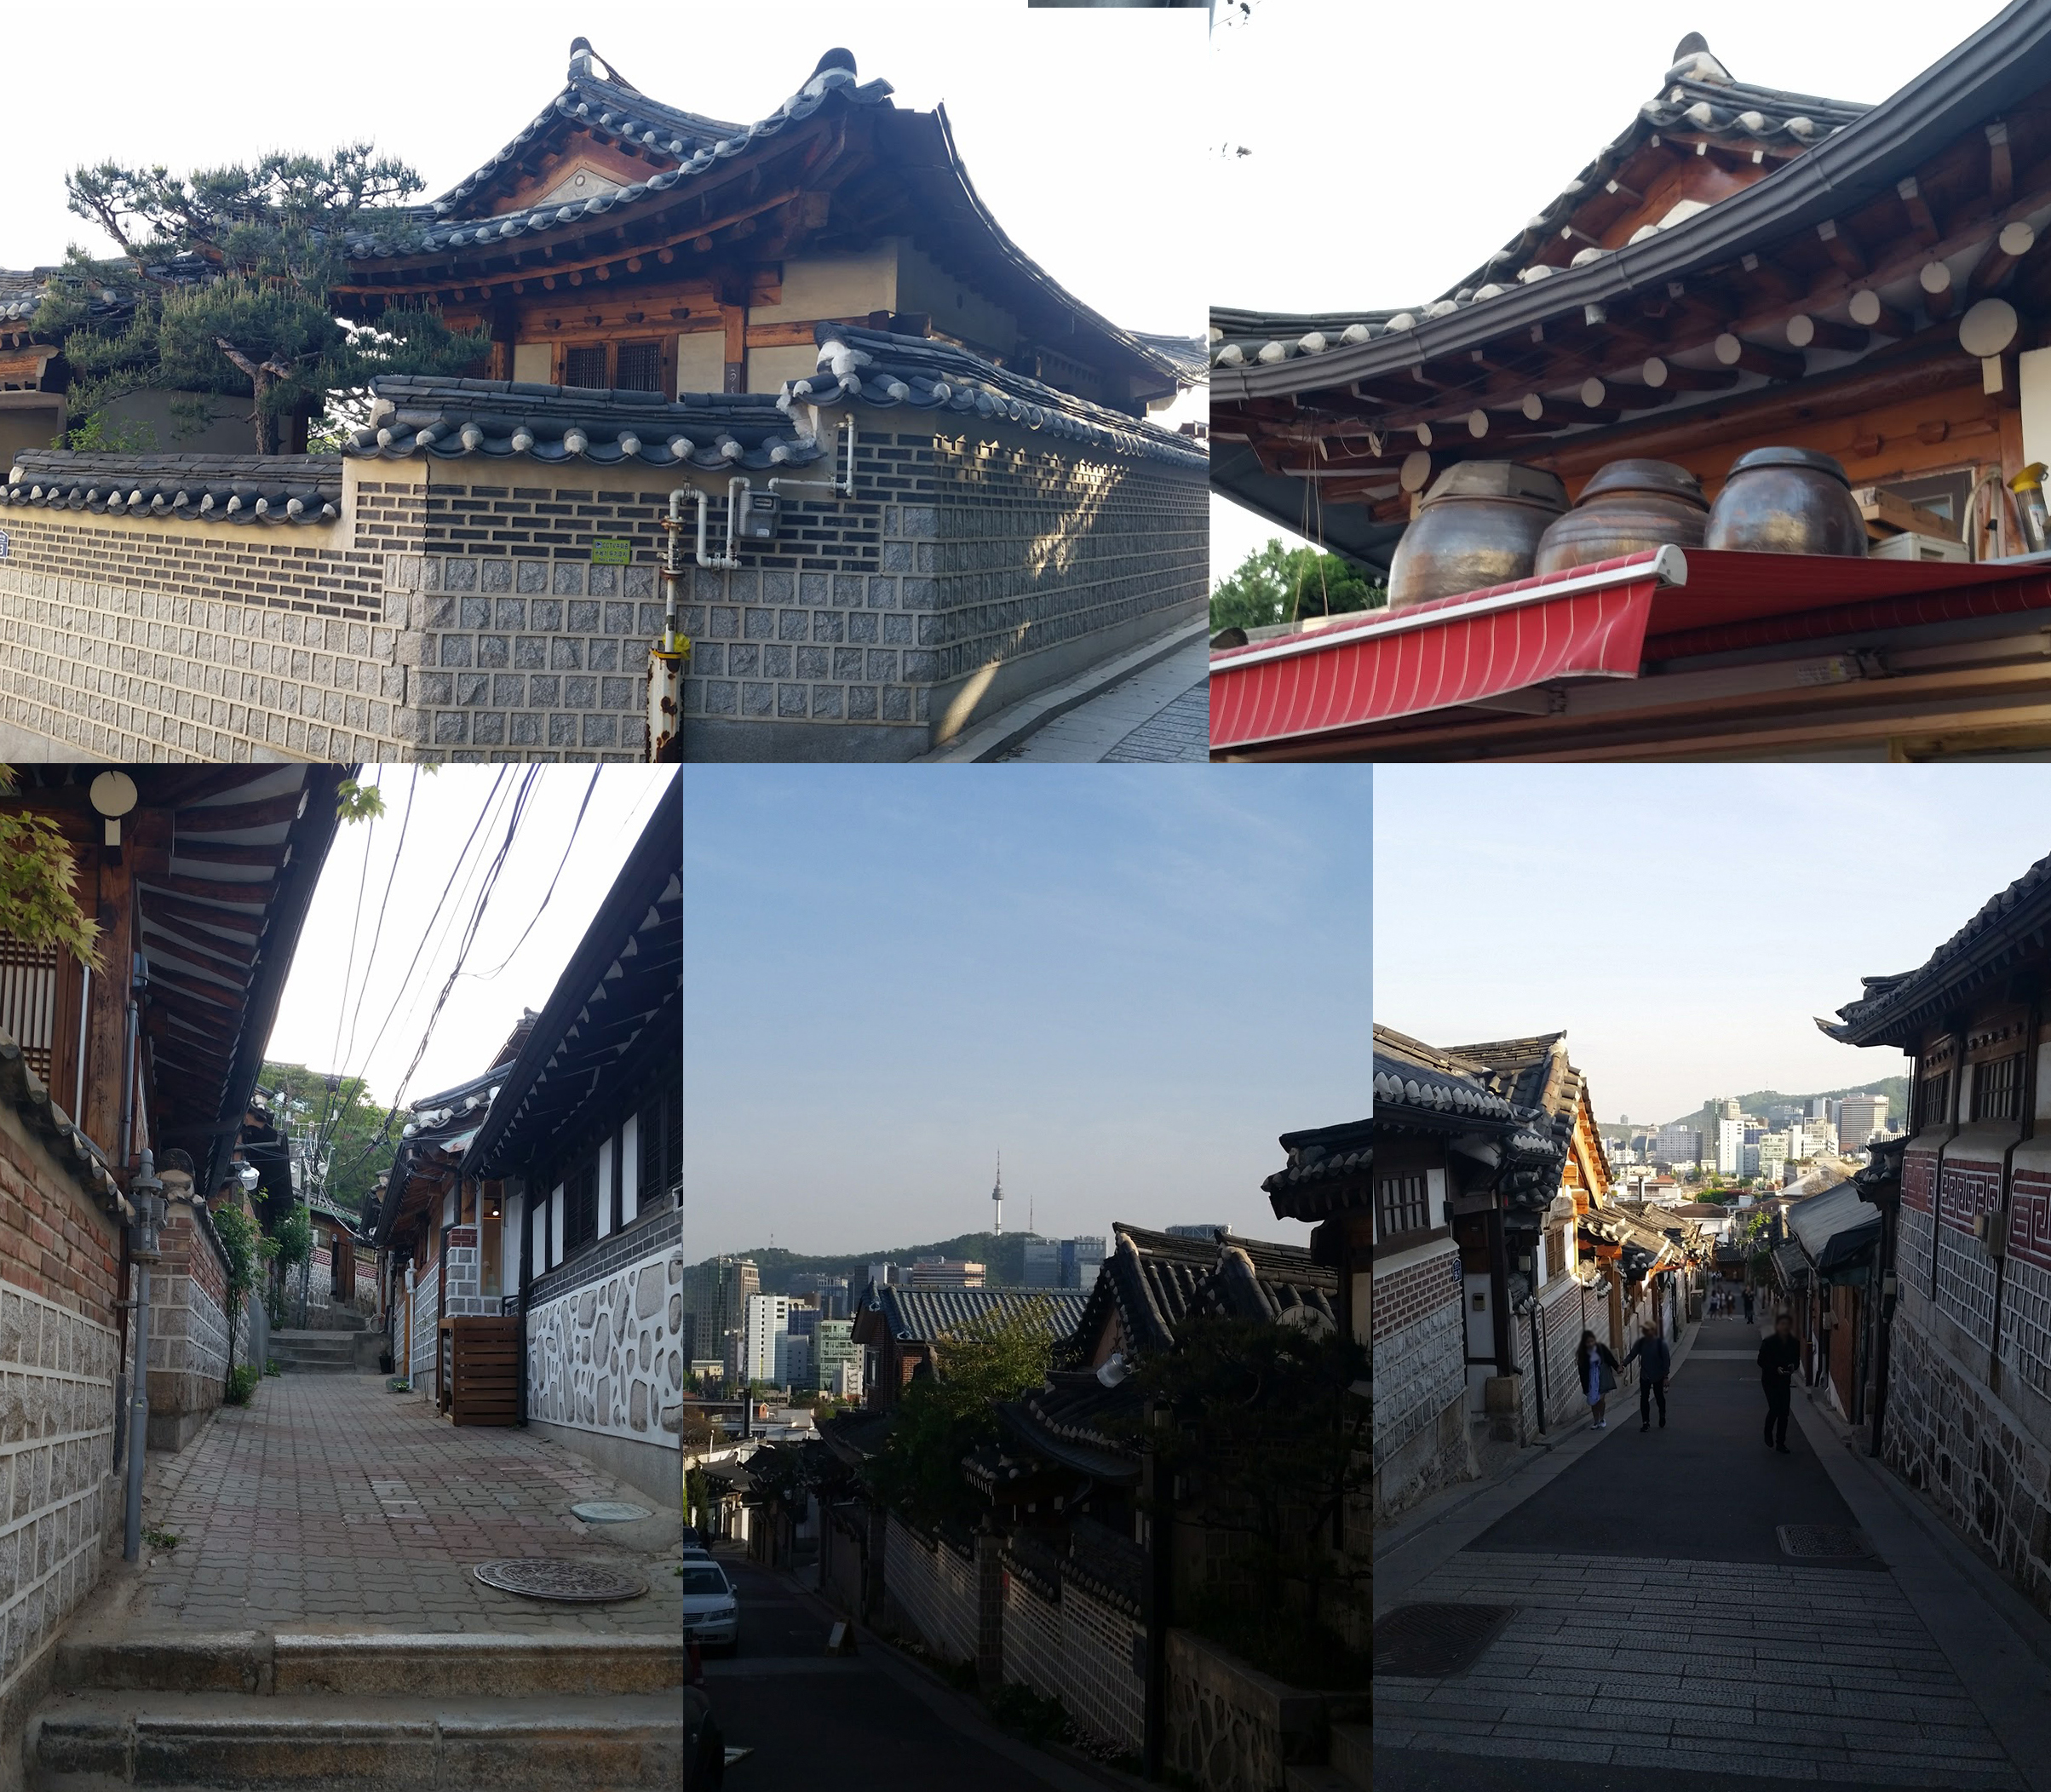 Bukchon Collage